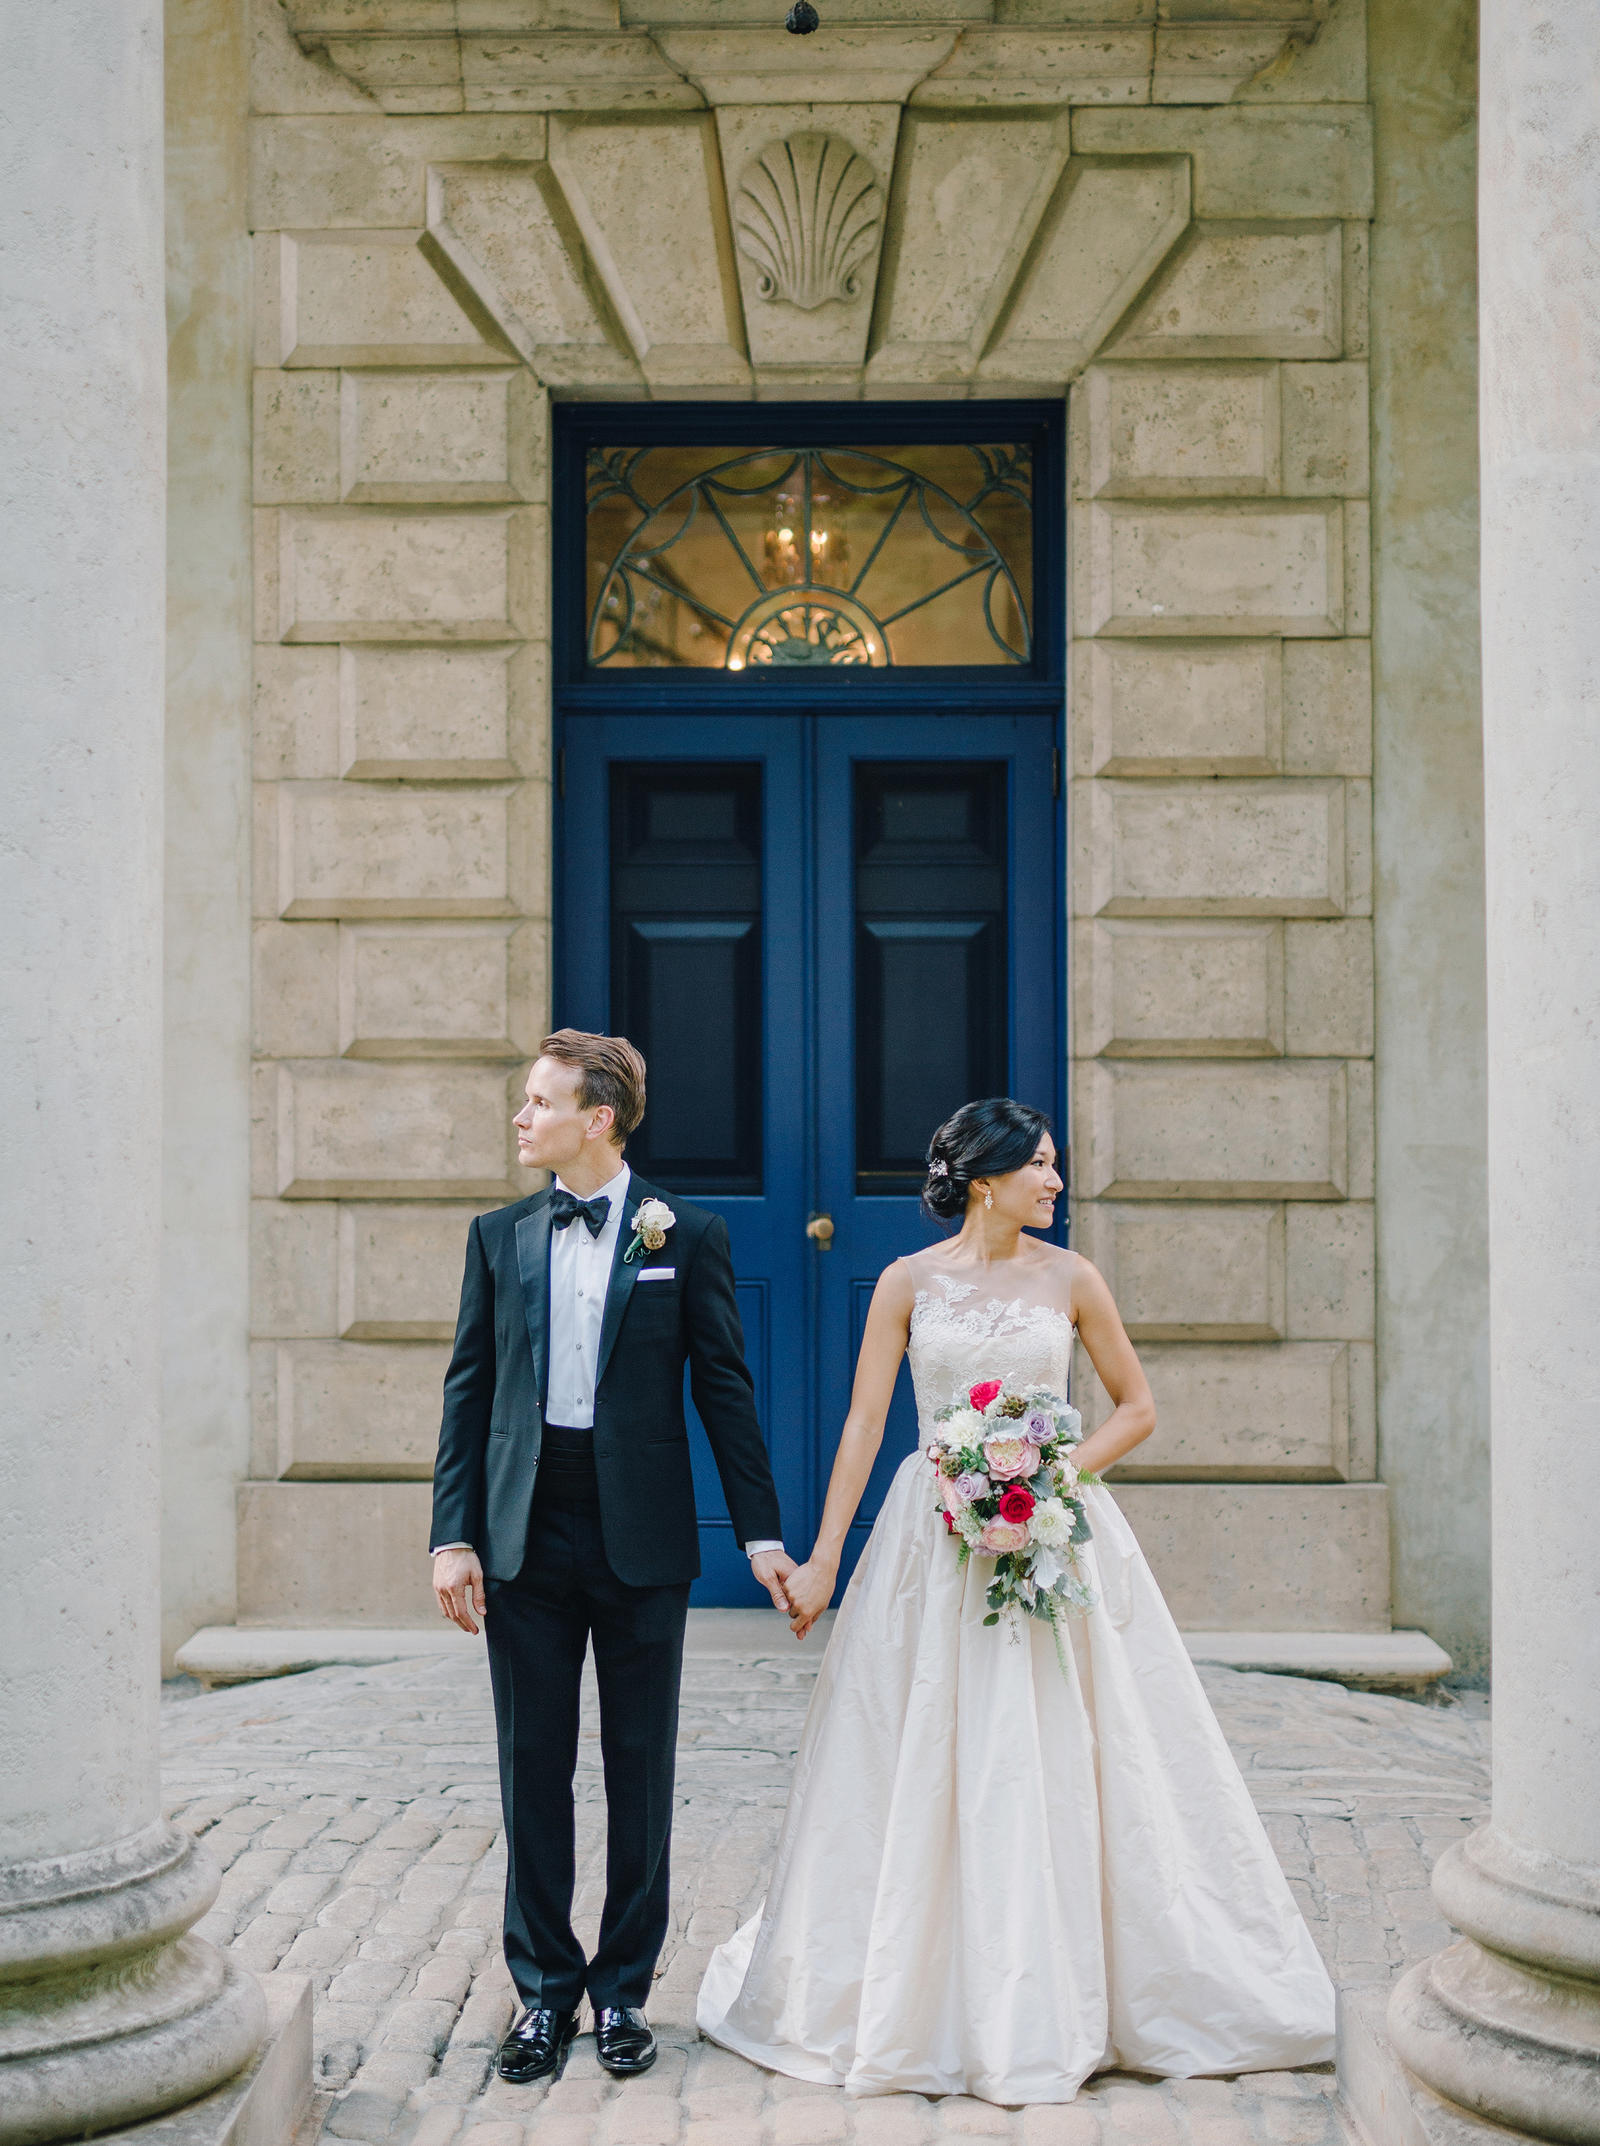 Wedding Photography | A bride and her groom stand under a portico, holding hands.